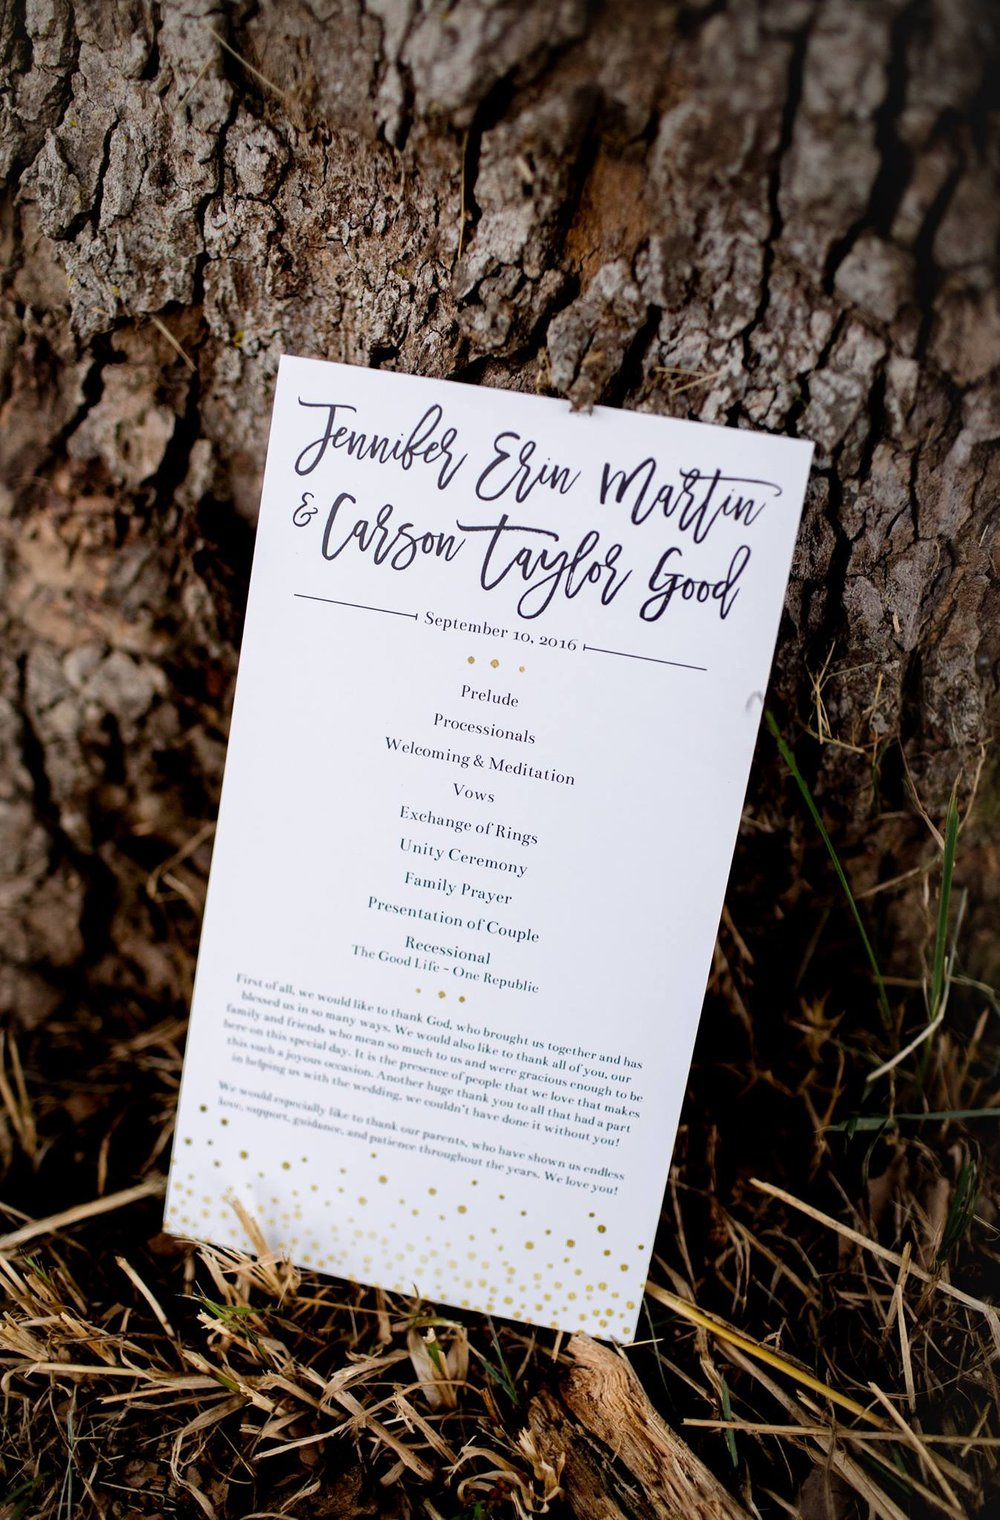 jen & carson | program   photo credit: onethirtynine photography